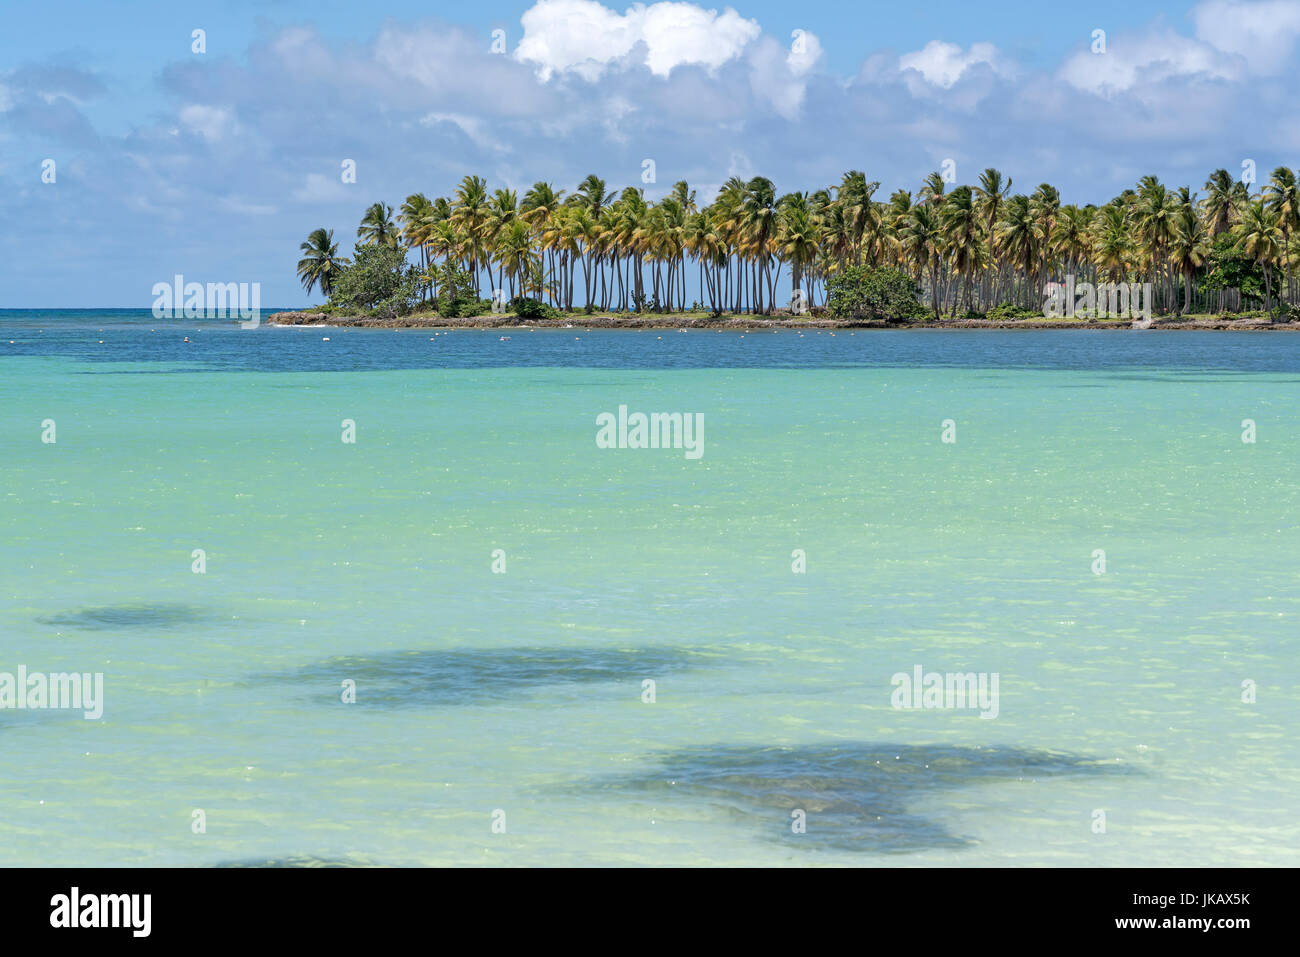 Atlantic ocean with coconut trees in the Dominican Republic - Stock Image